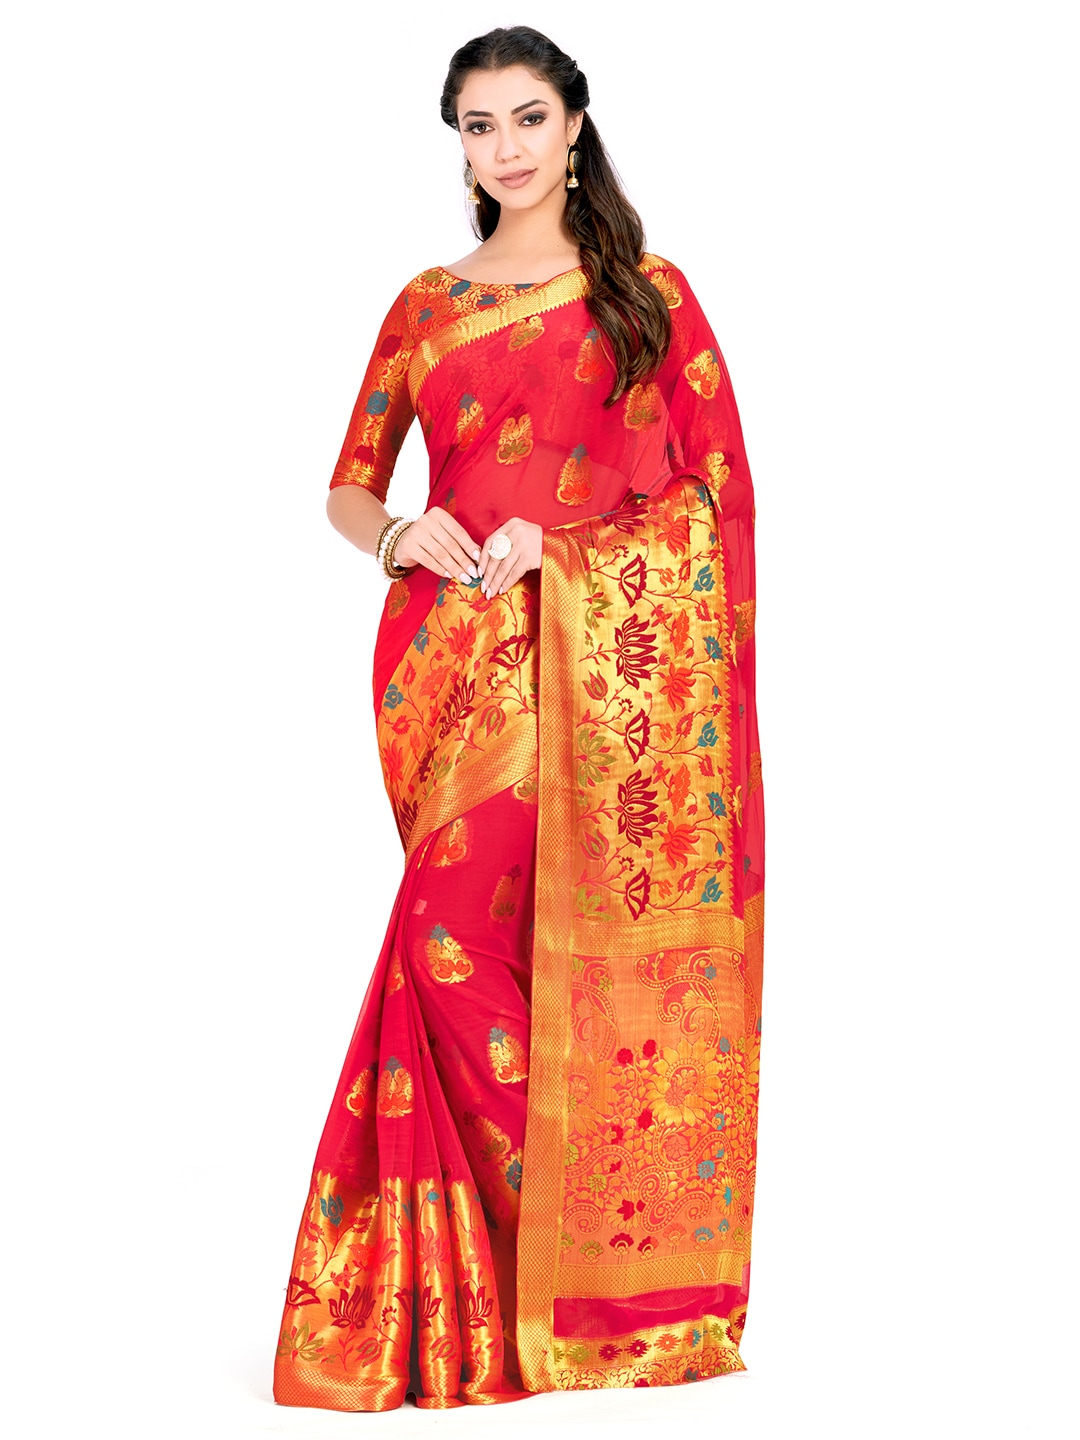 d95f95979054c Women Saree Trousers - Buy Women Saree Trousers online in India